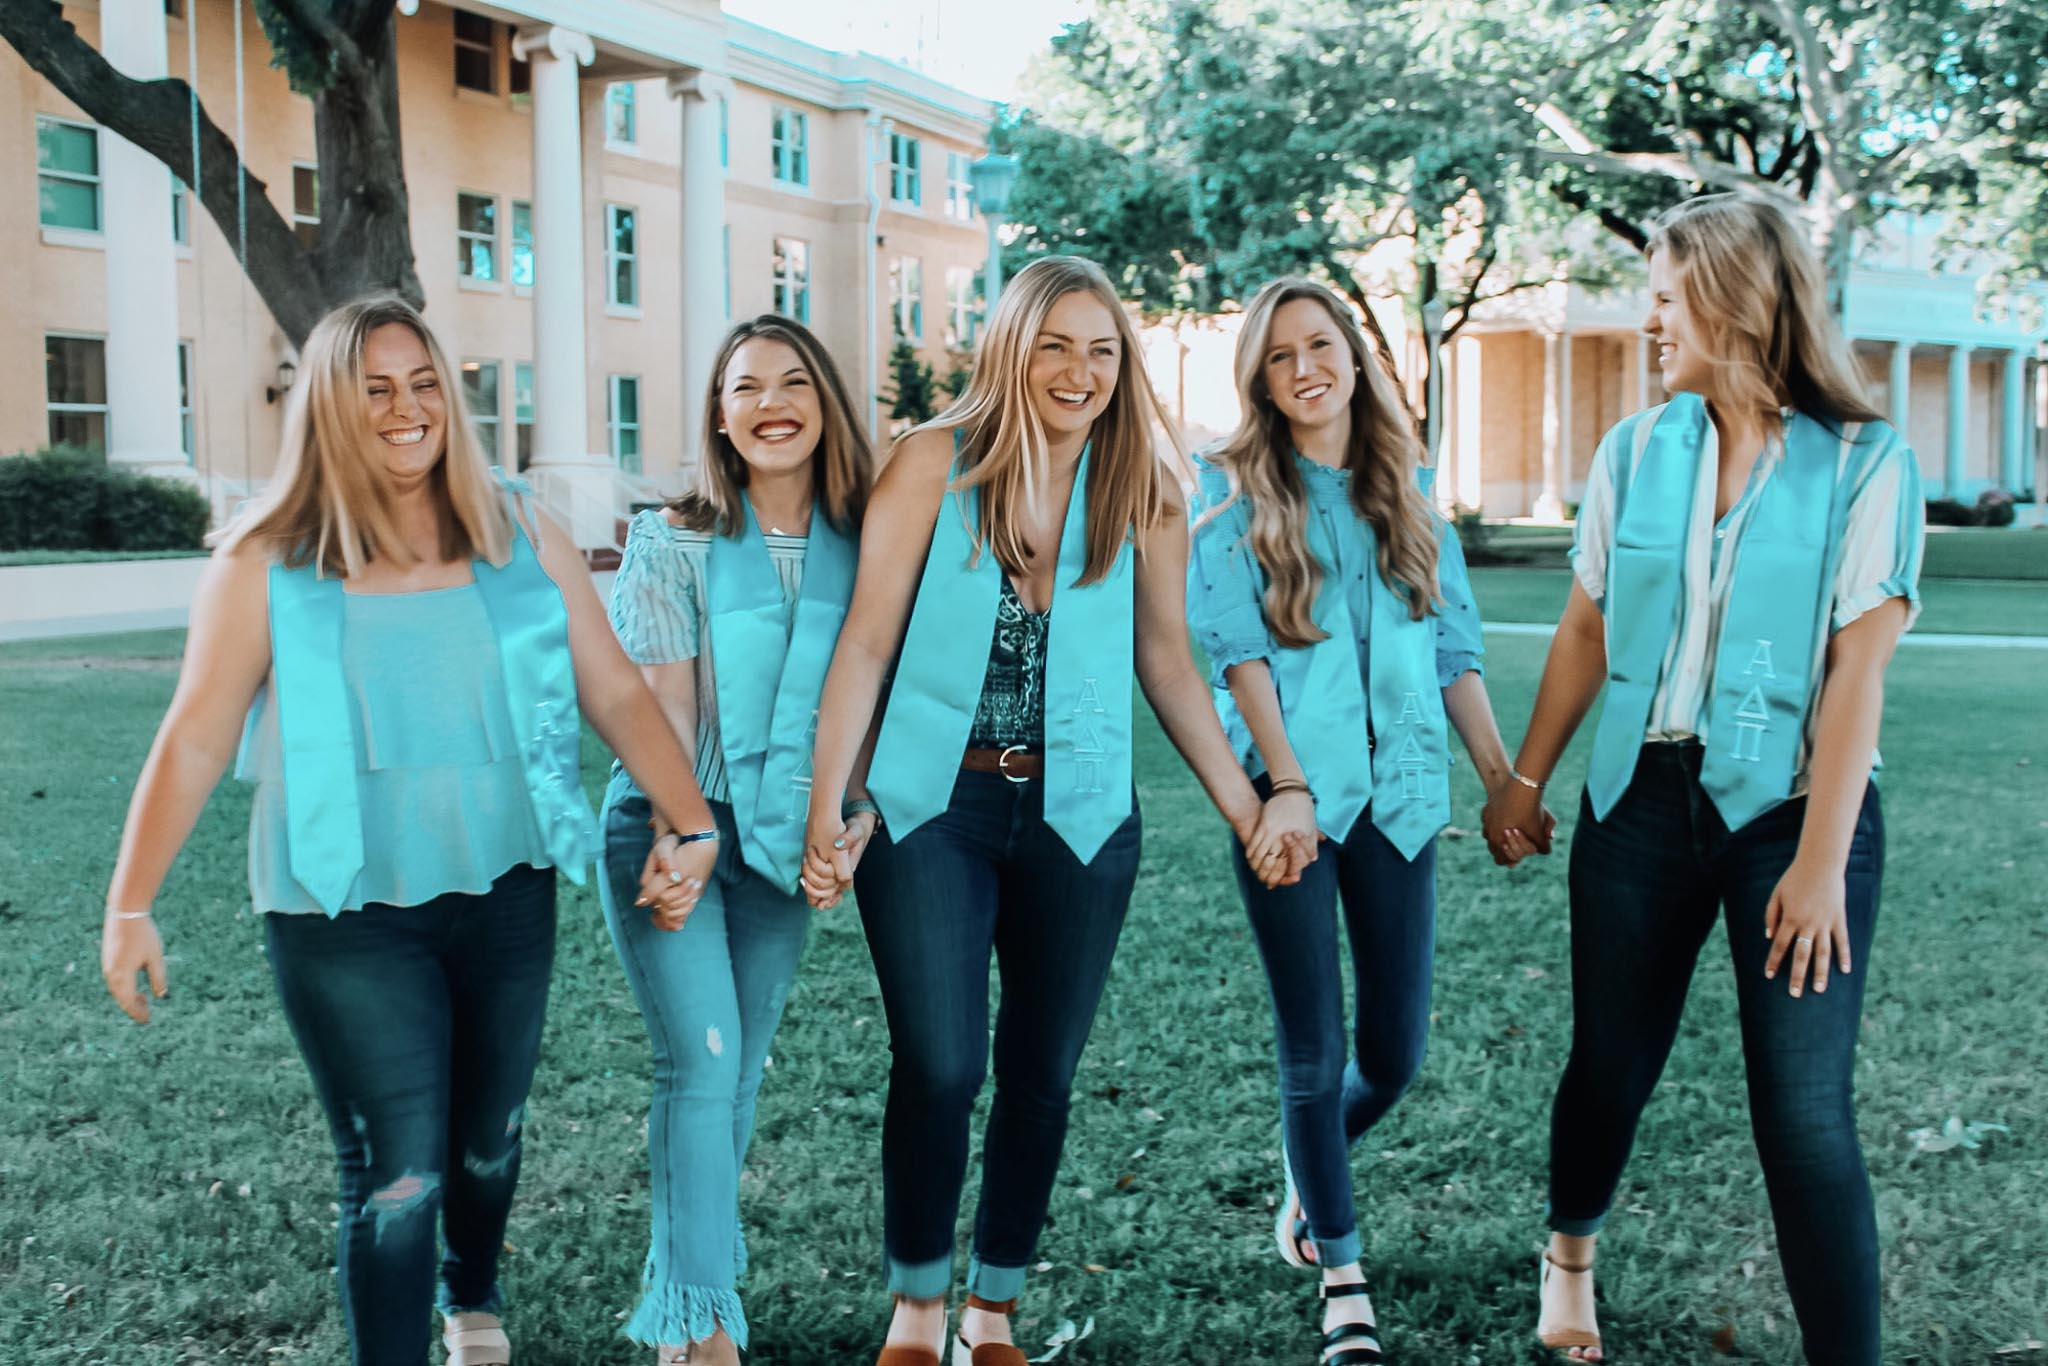 Sorority sisters walking together on campus with turquoise tinted clothing and background